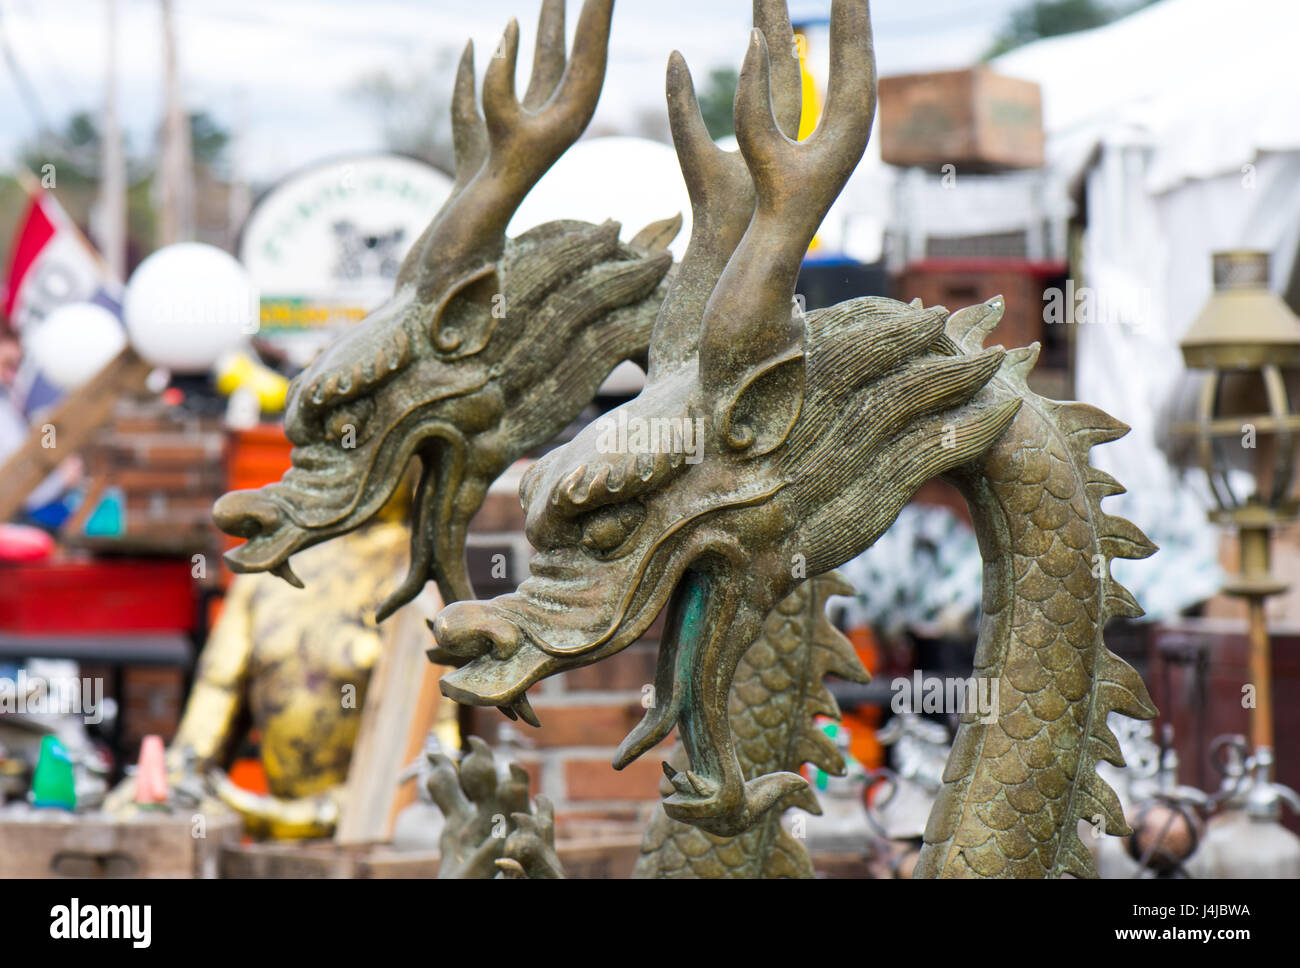 A pair of Asian dragon statues at an outdoor antique fair. - Stock Image